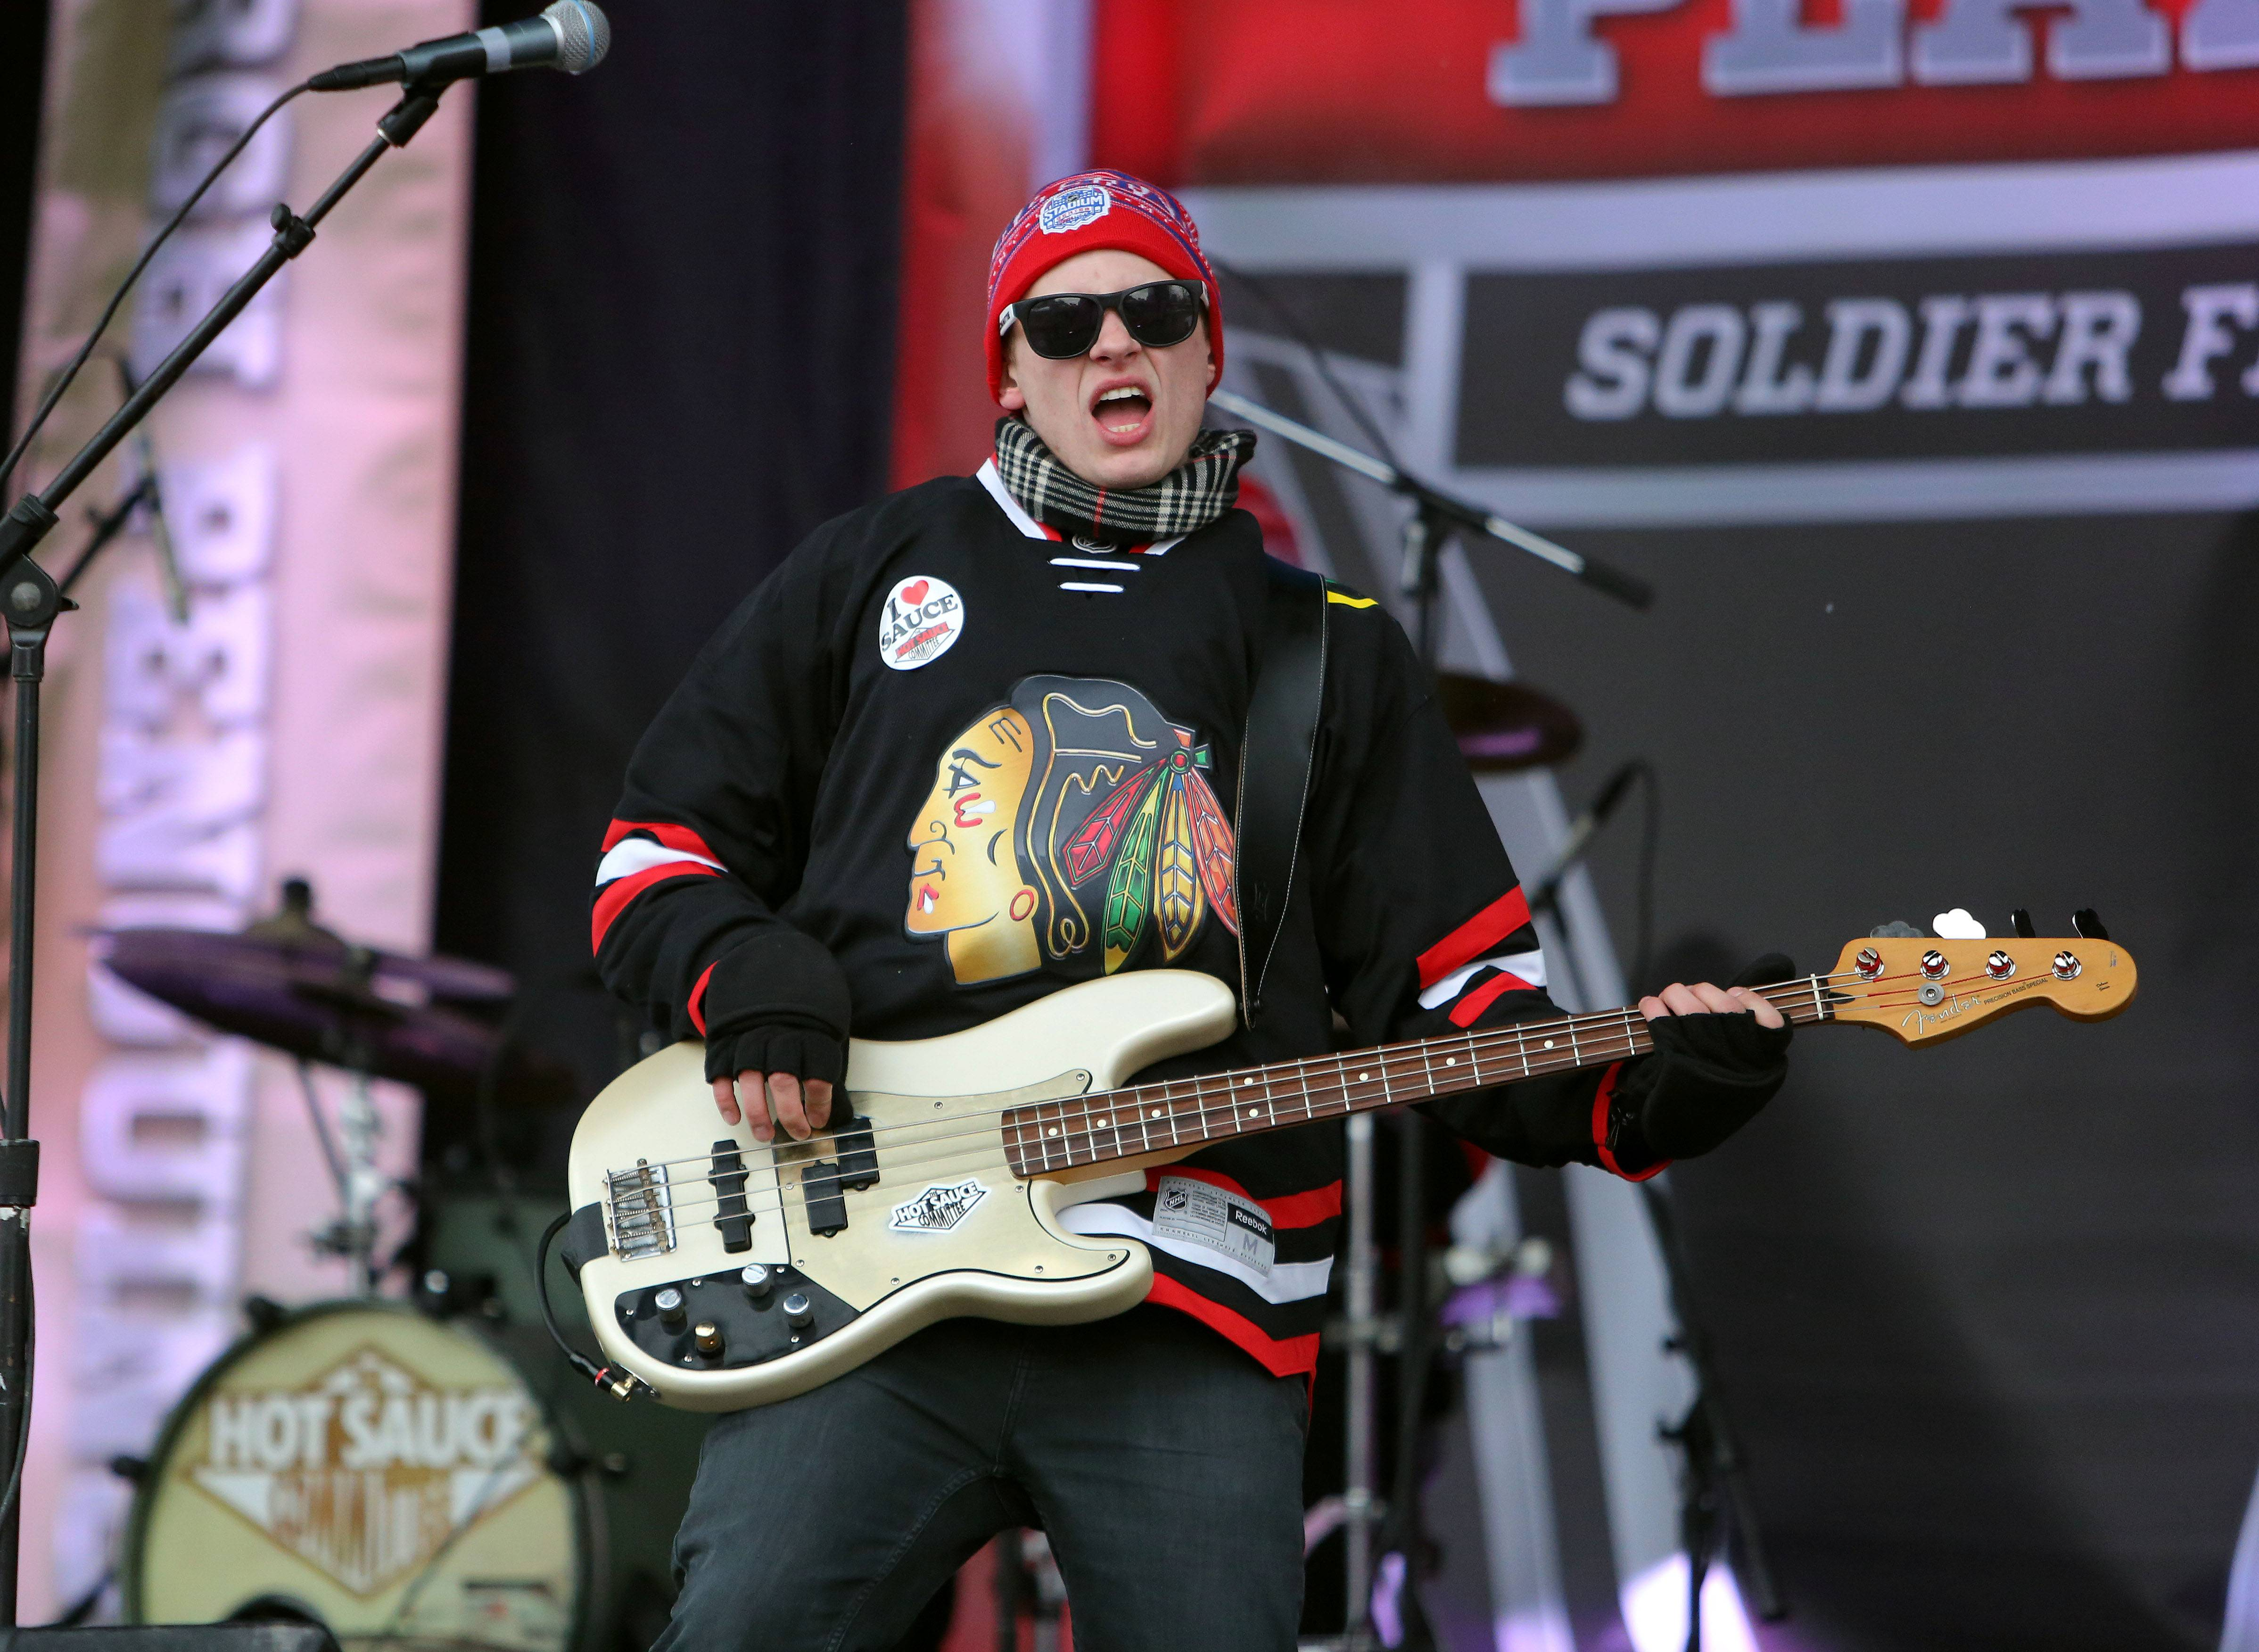 Hot Sauce performs in the spectators plaza prior to the Blackhawks vs Penguins NHL Stadium Series Saturday at Soldier Field.